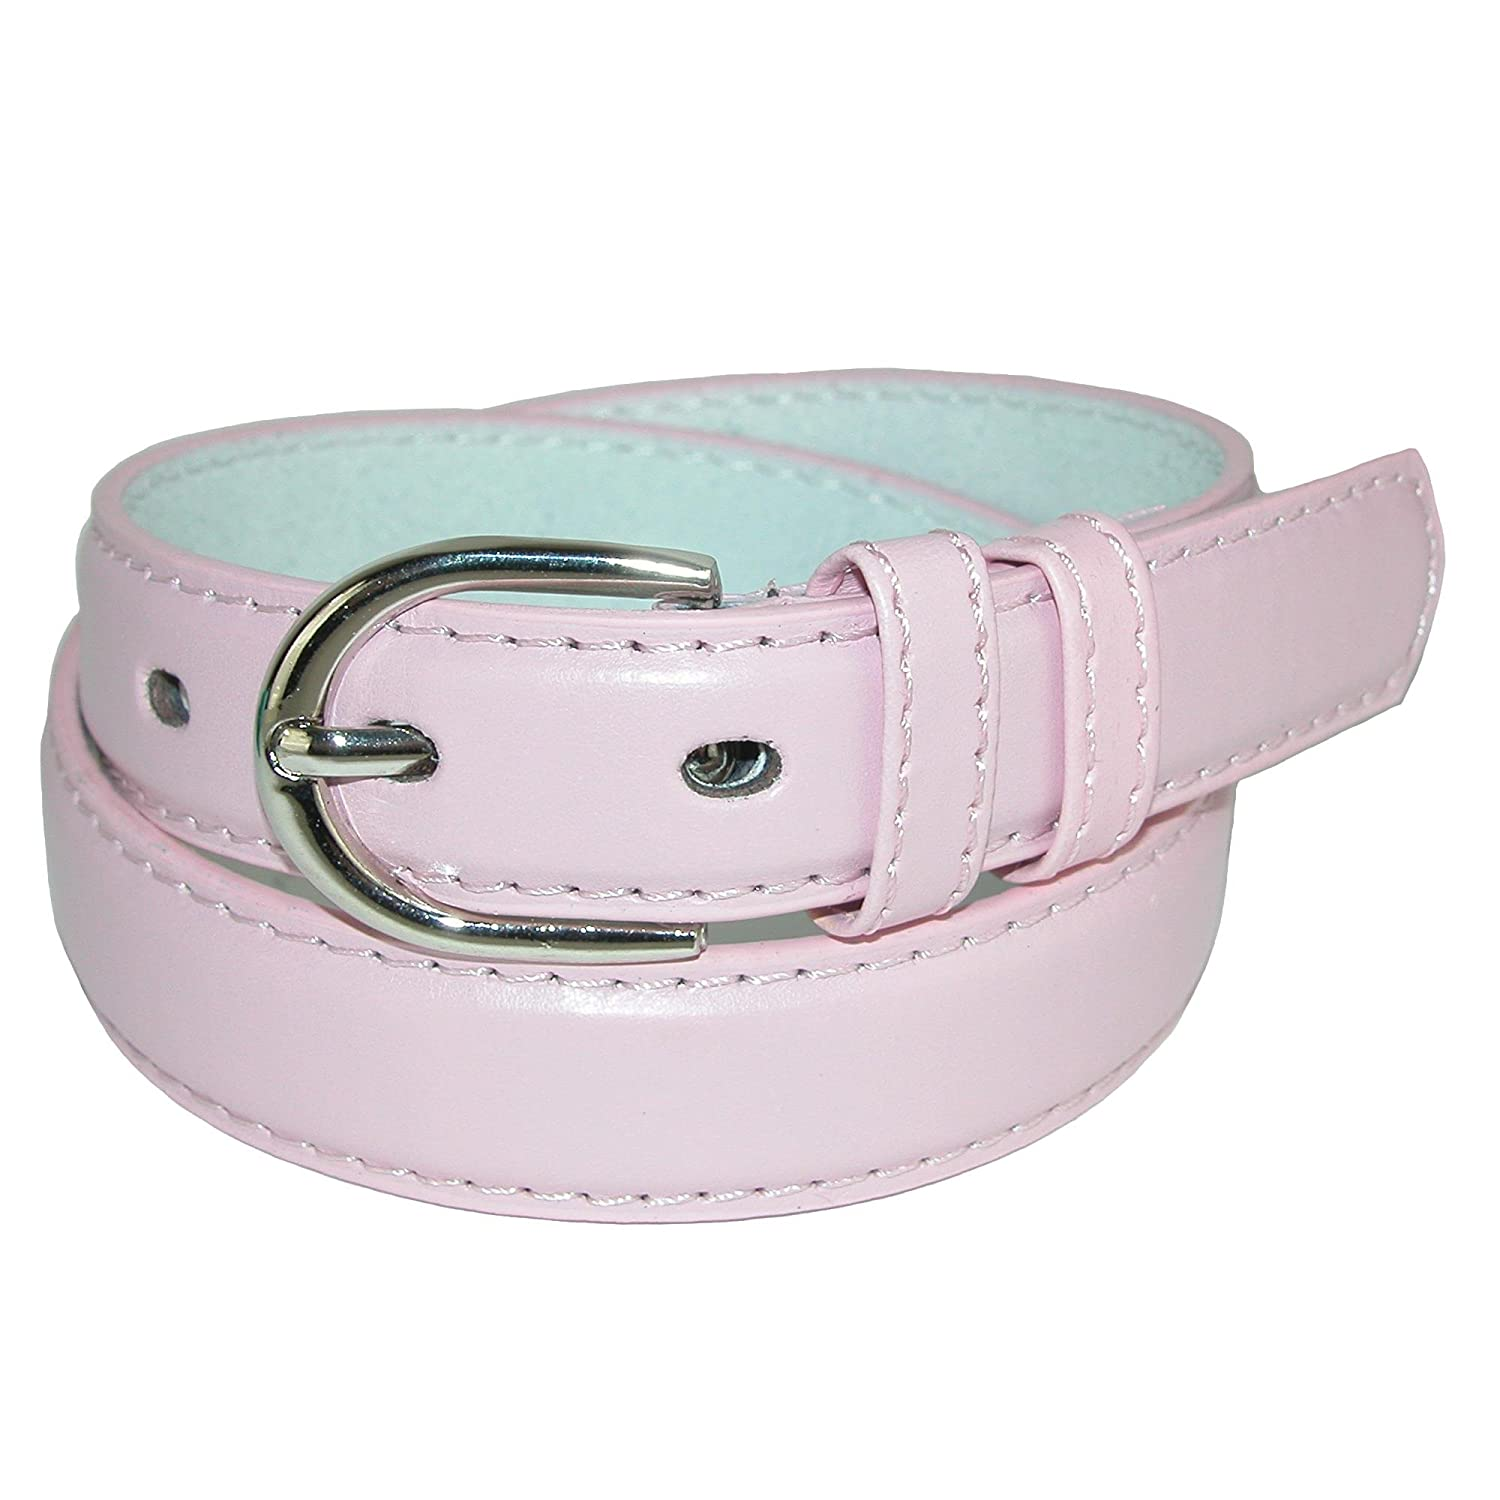 CTM® Kid's Leather 1 inch Basic Dress Belt, Small, Light Pink BB-189-LTP-S